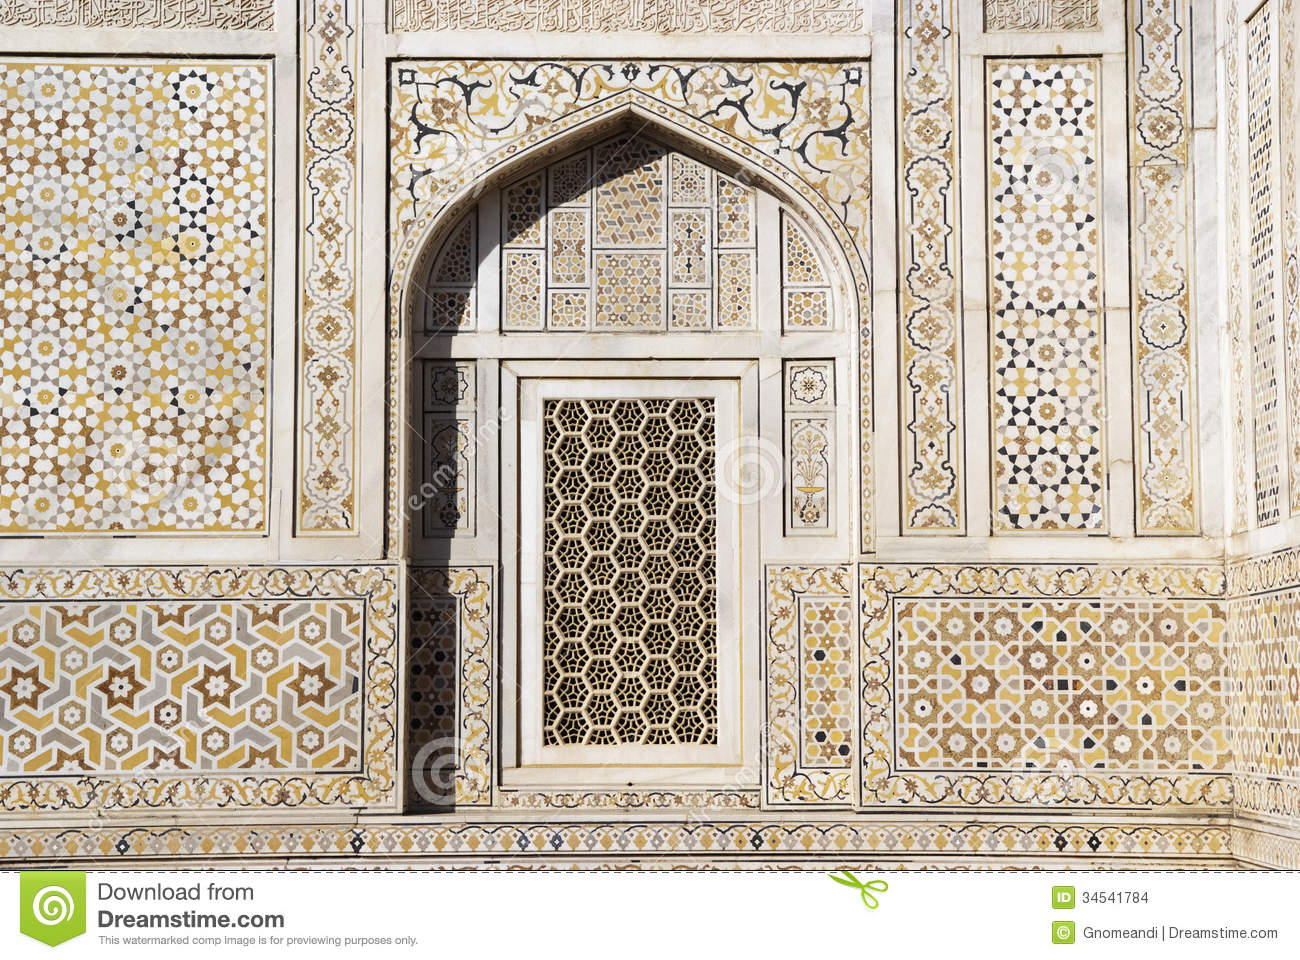 Itimad ud daulah tomb agra india stock images image for Outer wall design architecture